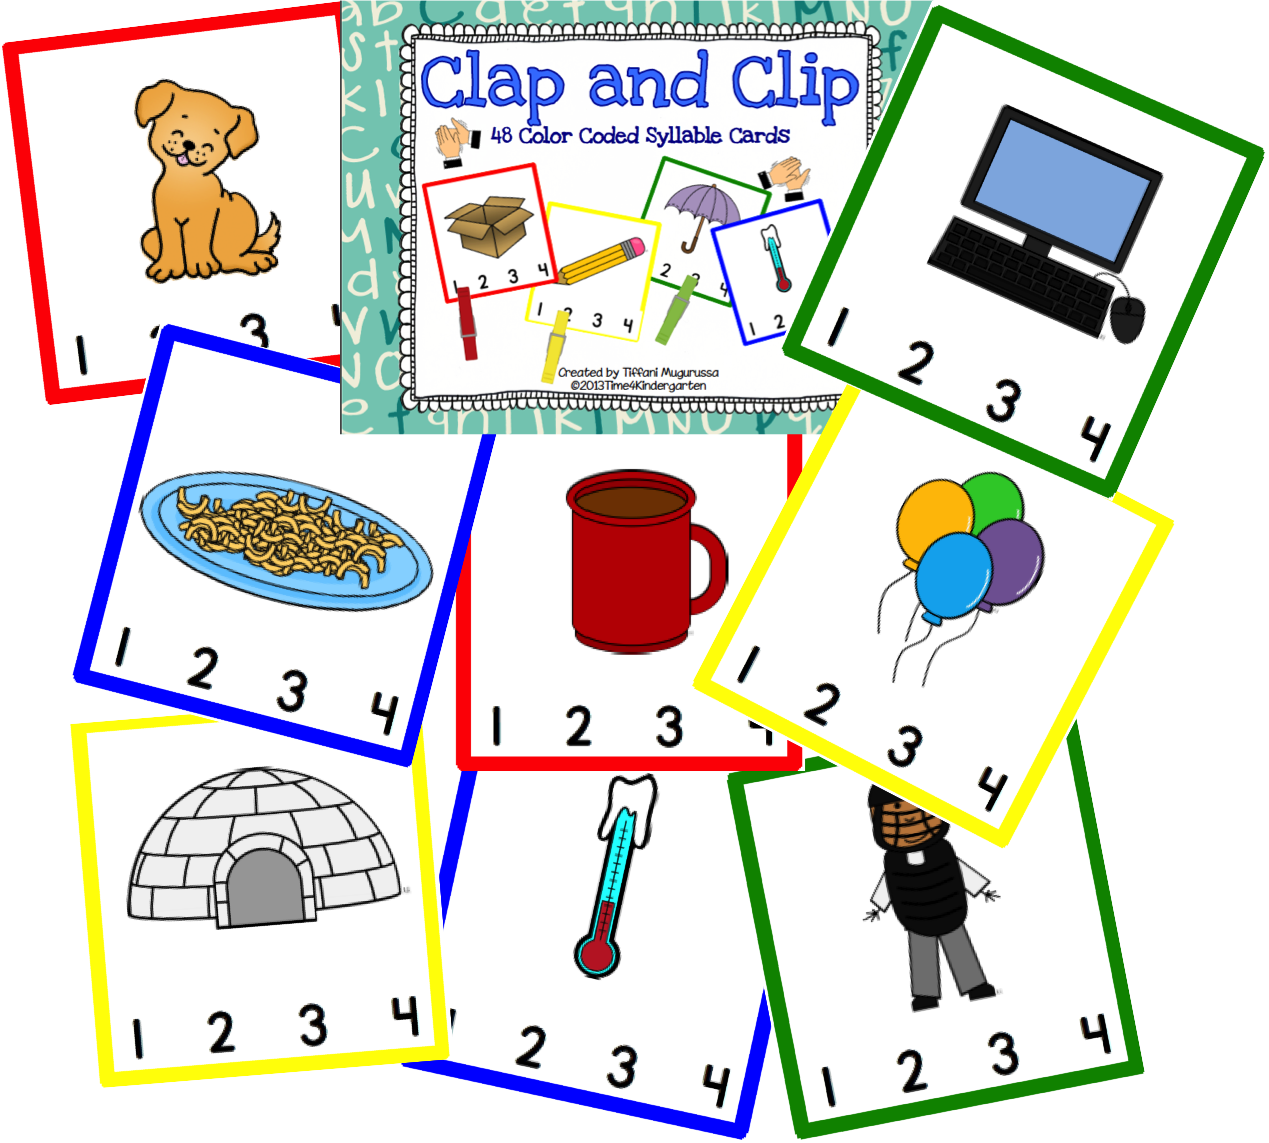 Clap clipart syllable, Clap syllable Transparent FREE for.